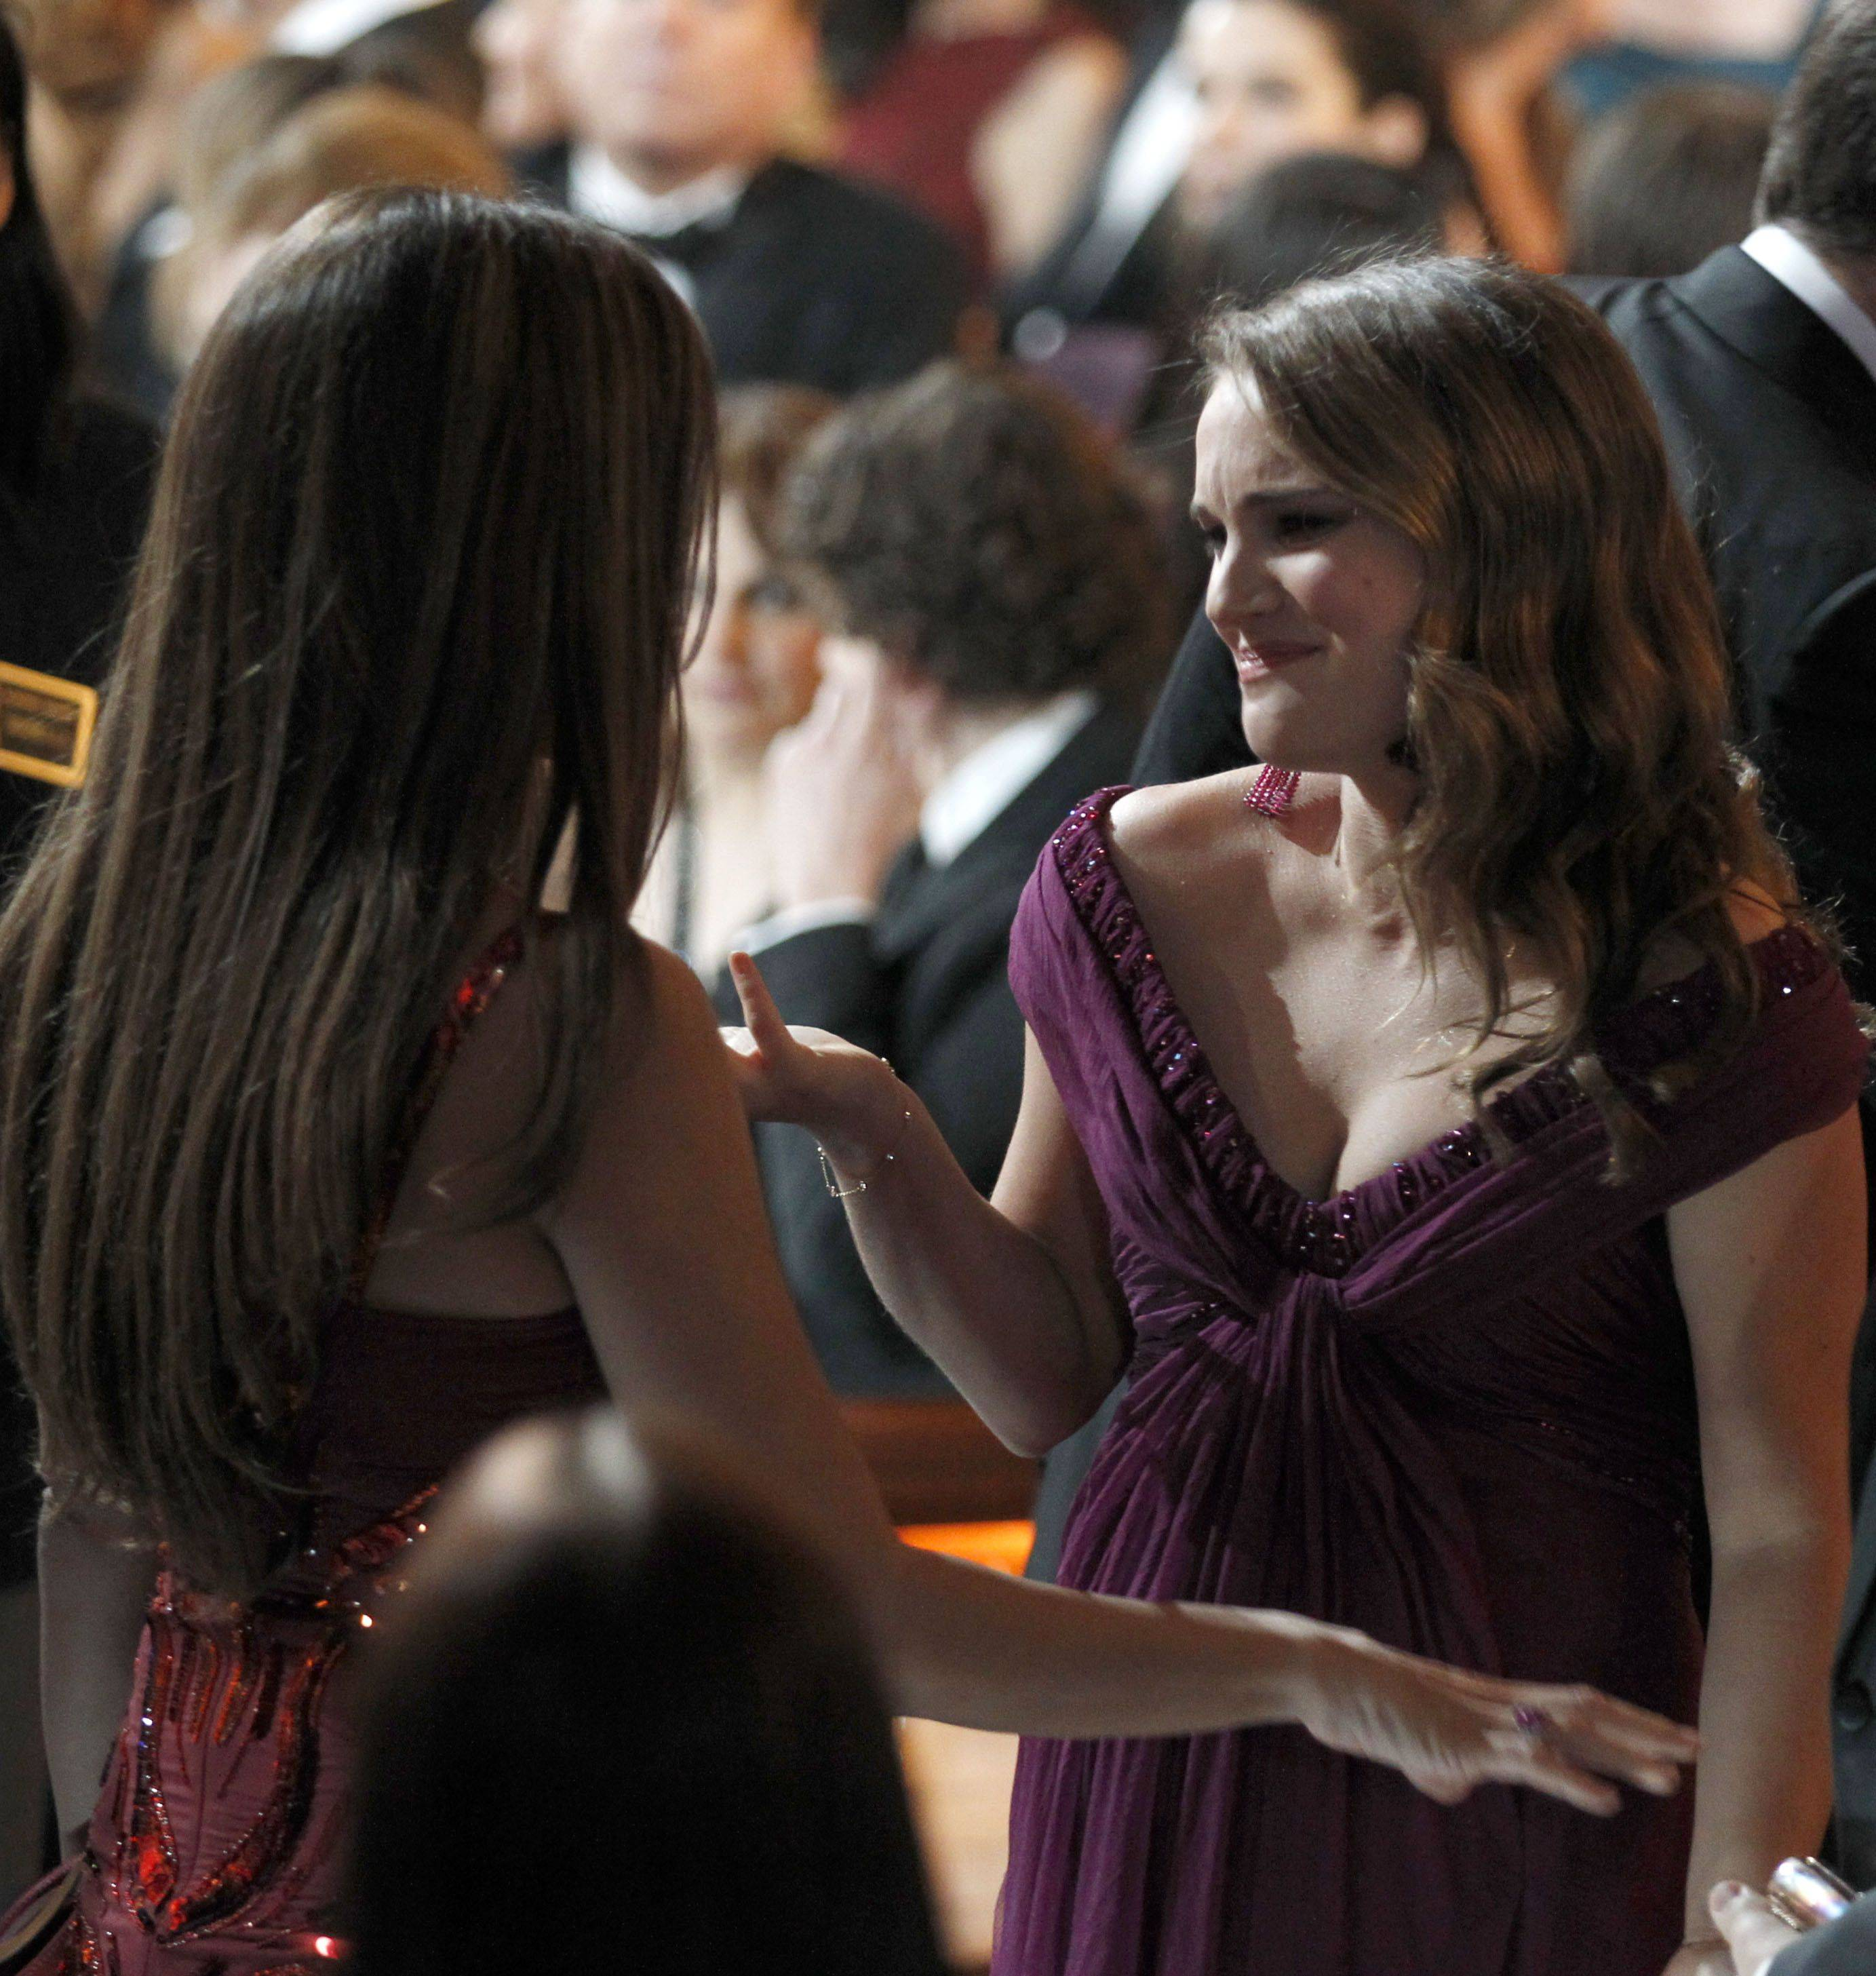 Associated PressOscar winners Penelope Cruz, left, and Natalie Portman get a minute to talk during a commercial break.